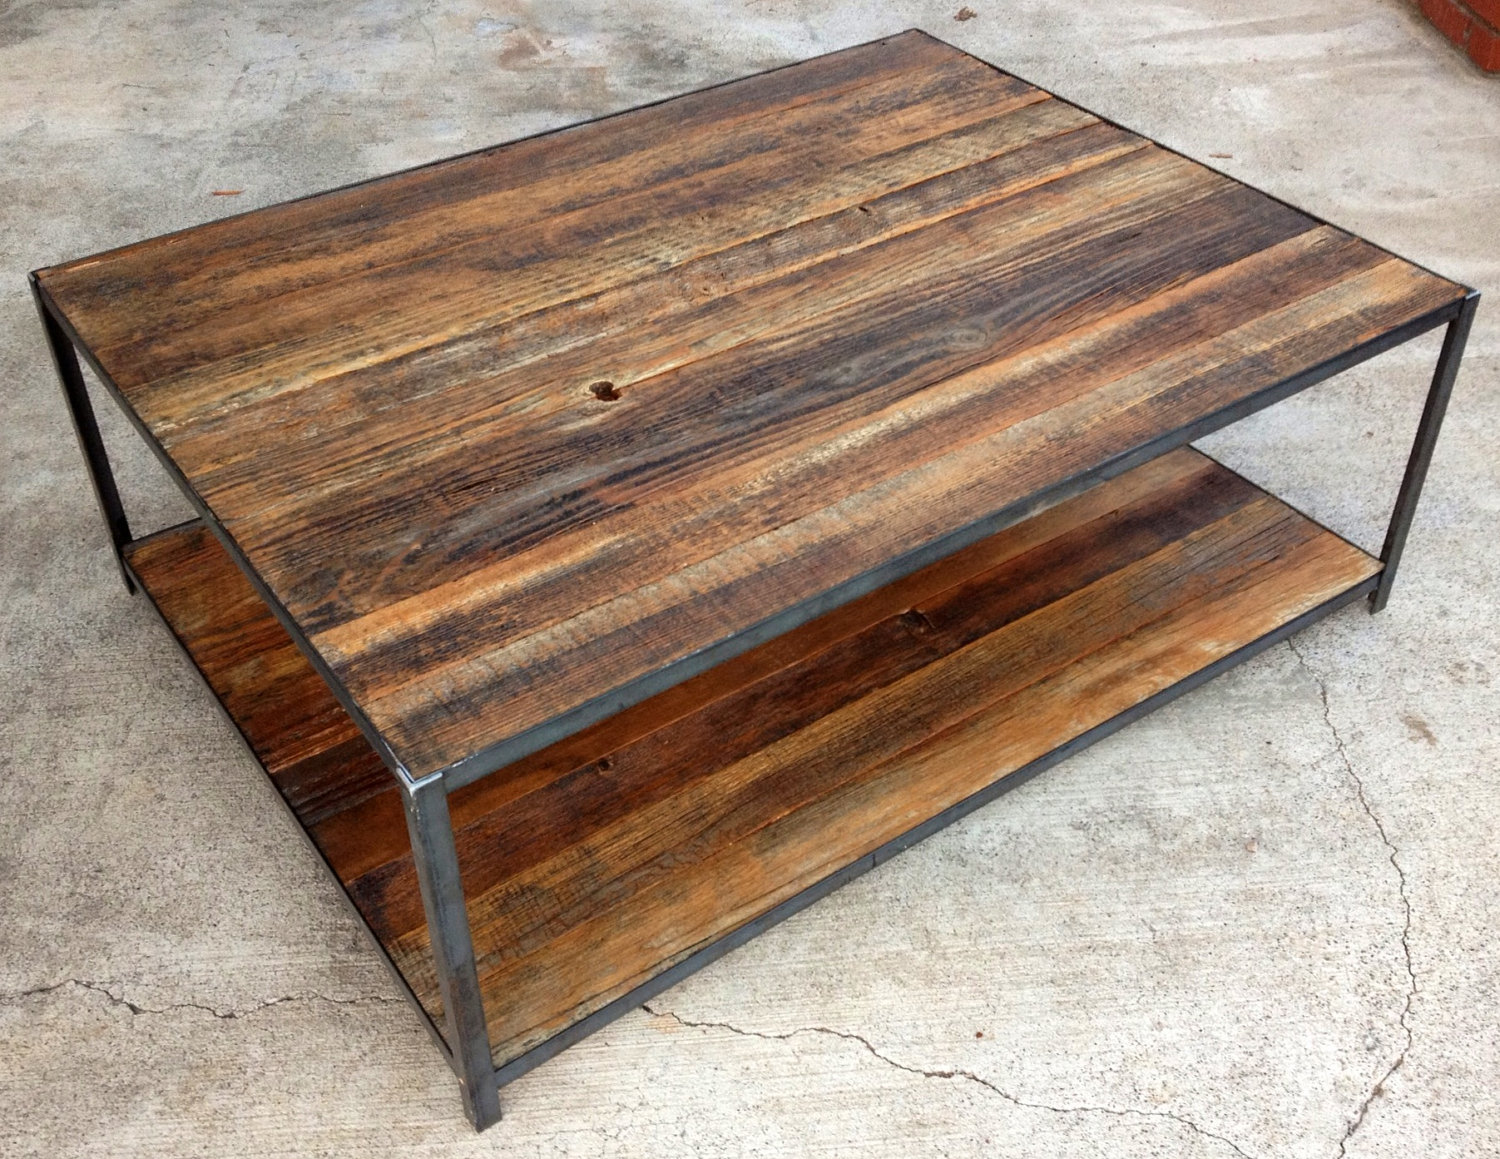 Wood Slab Dining Table (Image 10 of 10)